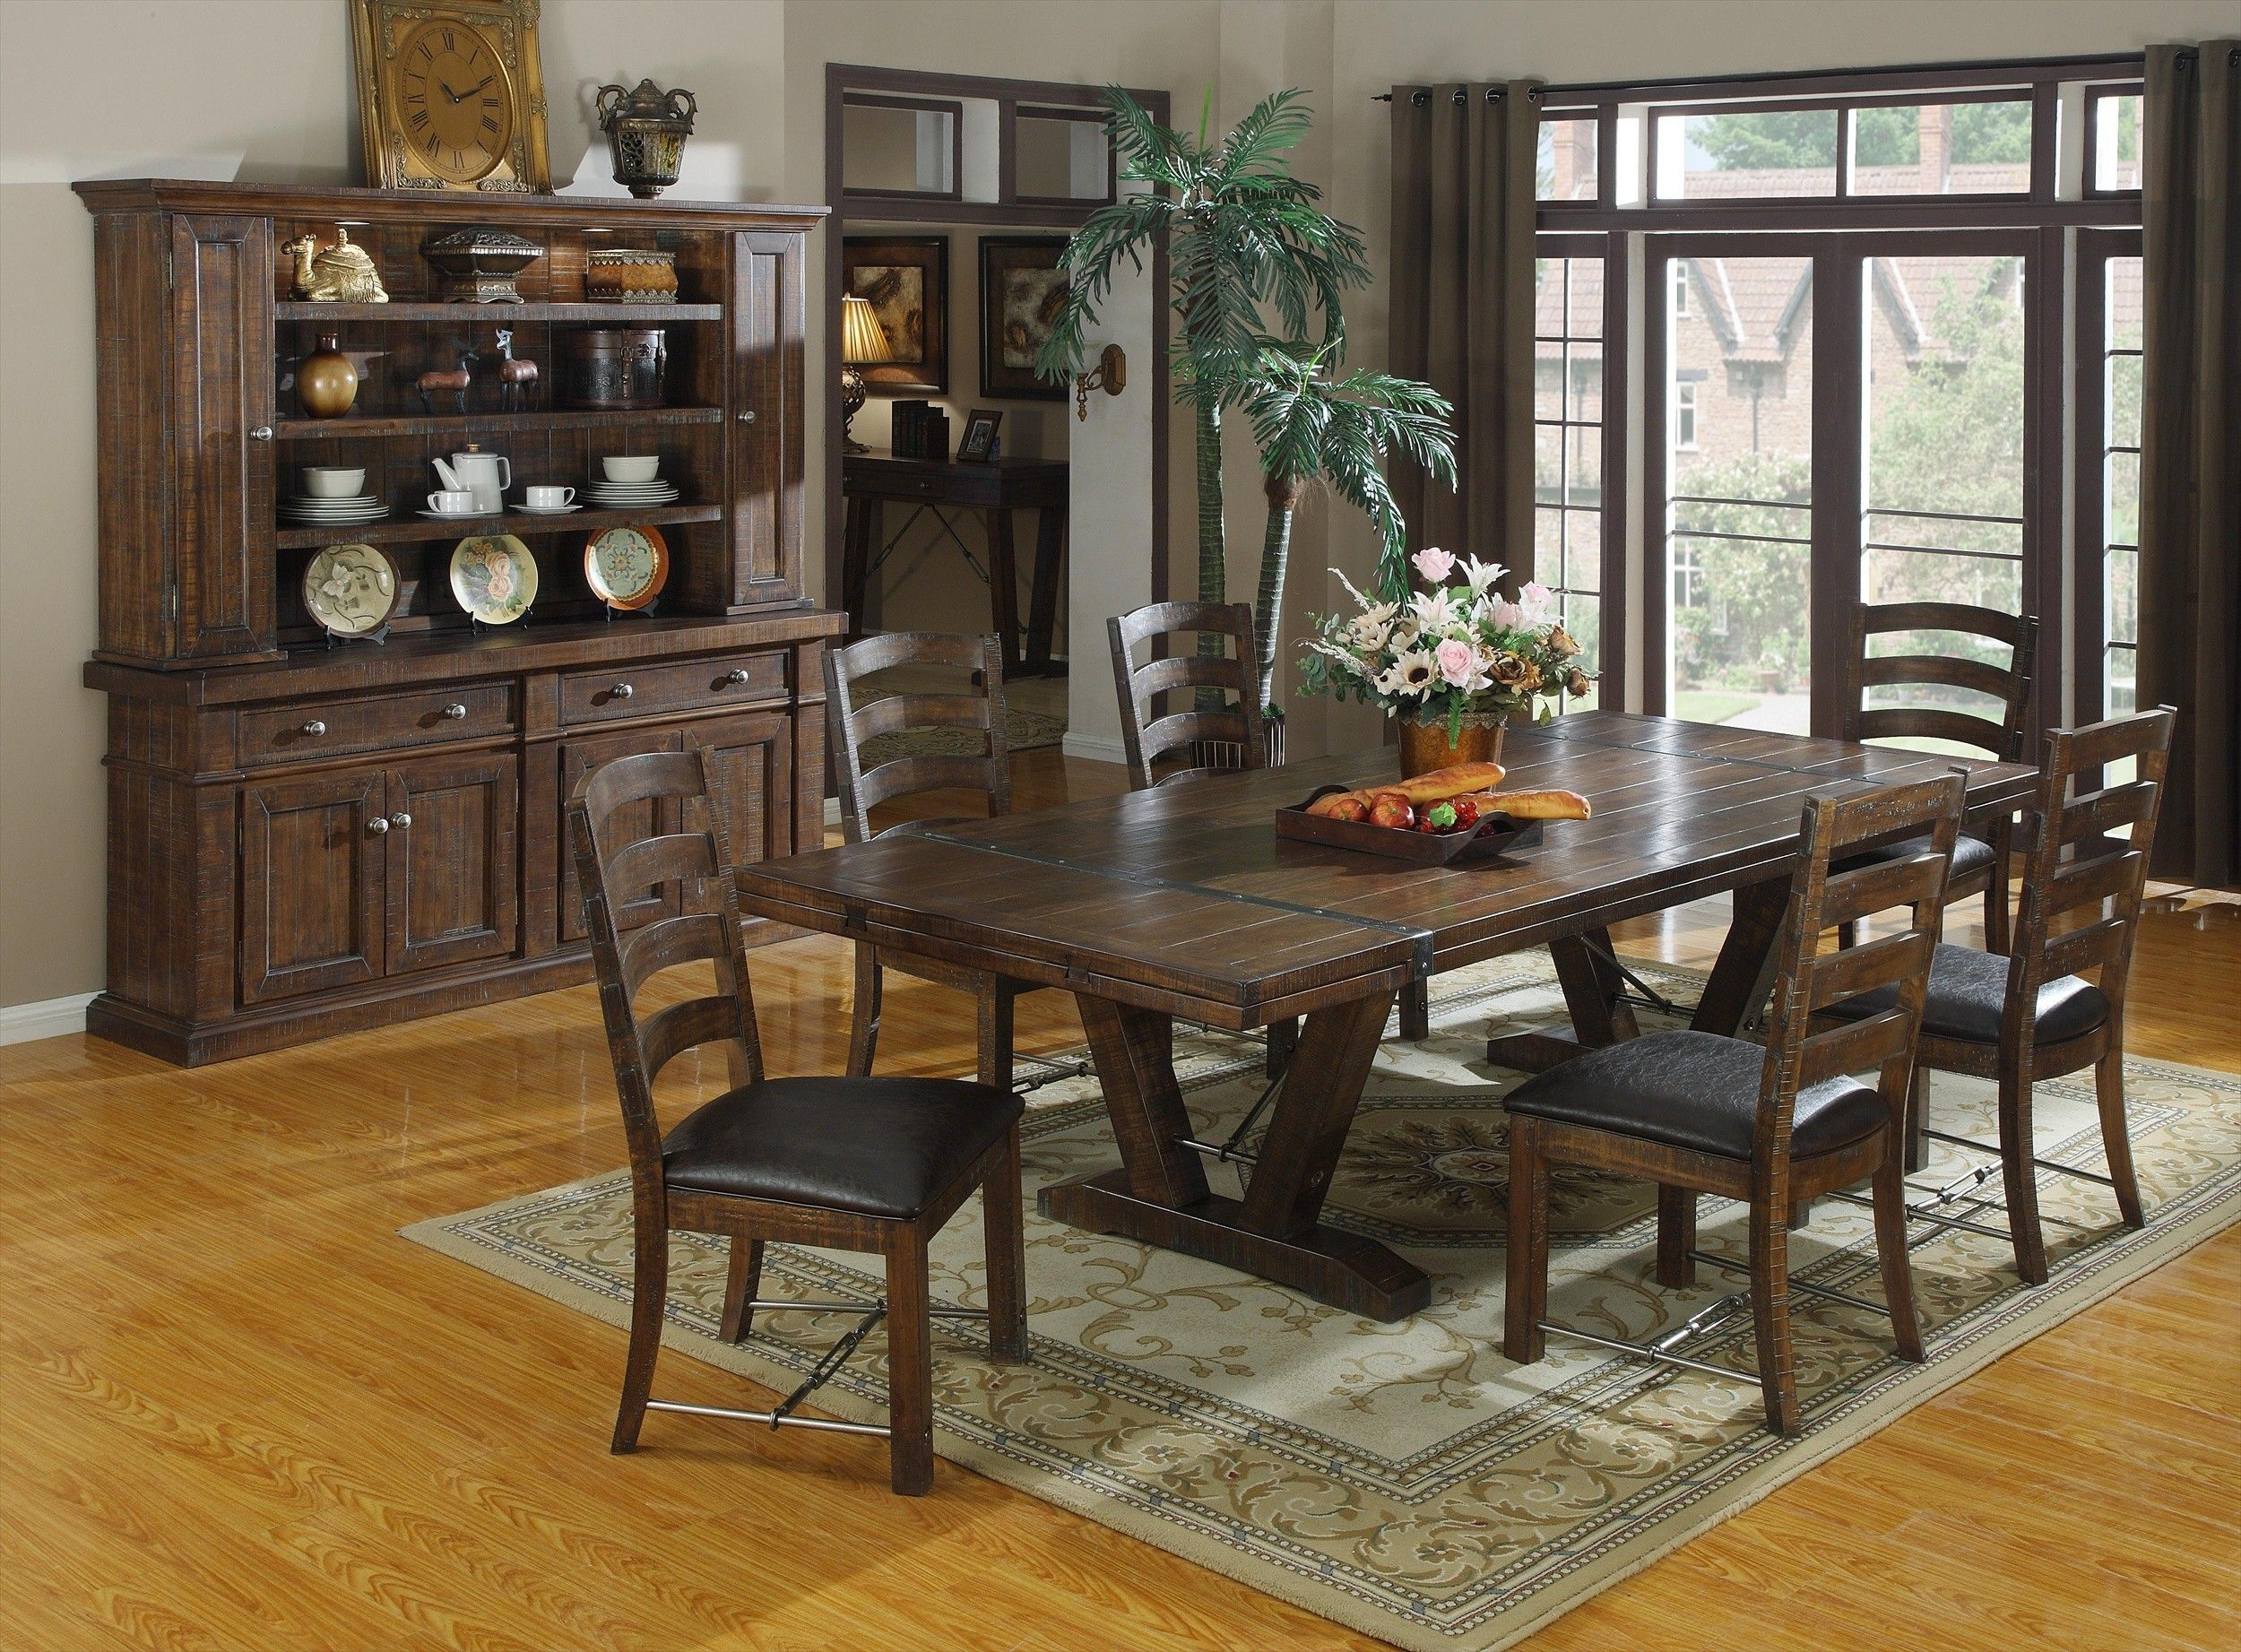 Round Dark Brown Wooden Table And White Cup Cream Chairs With ... Rustic  Dining Room SetsIndustrial ...